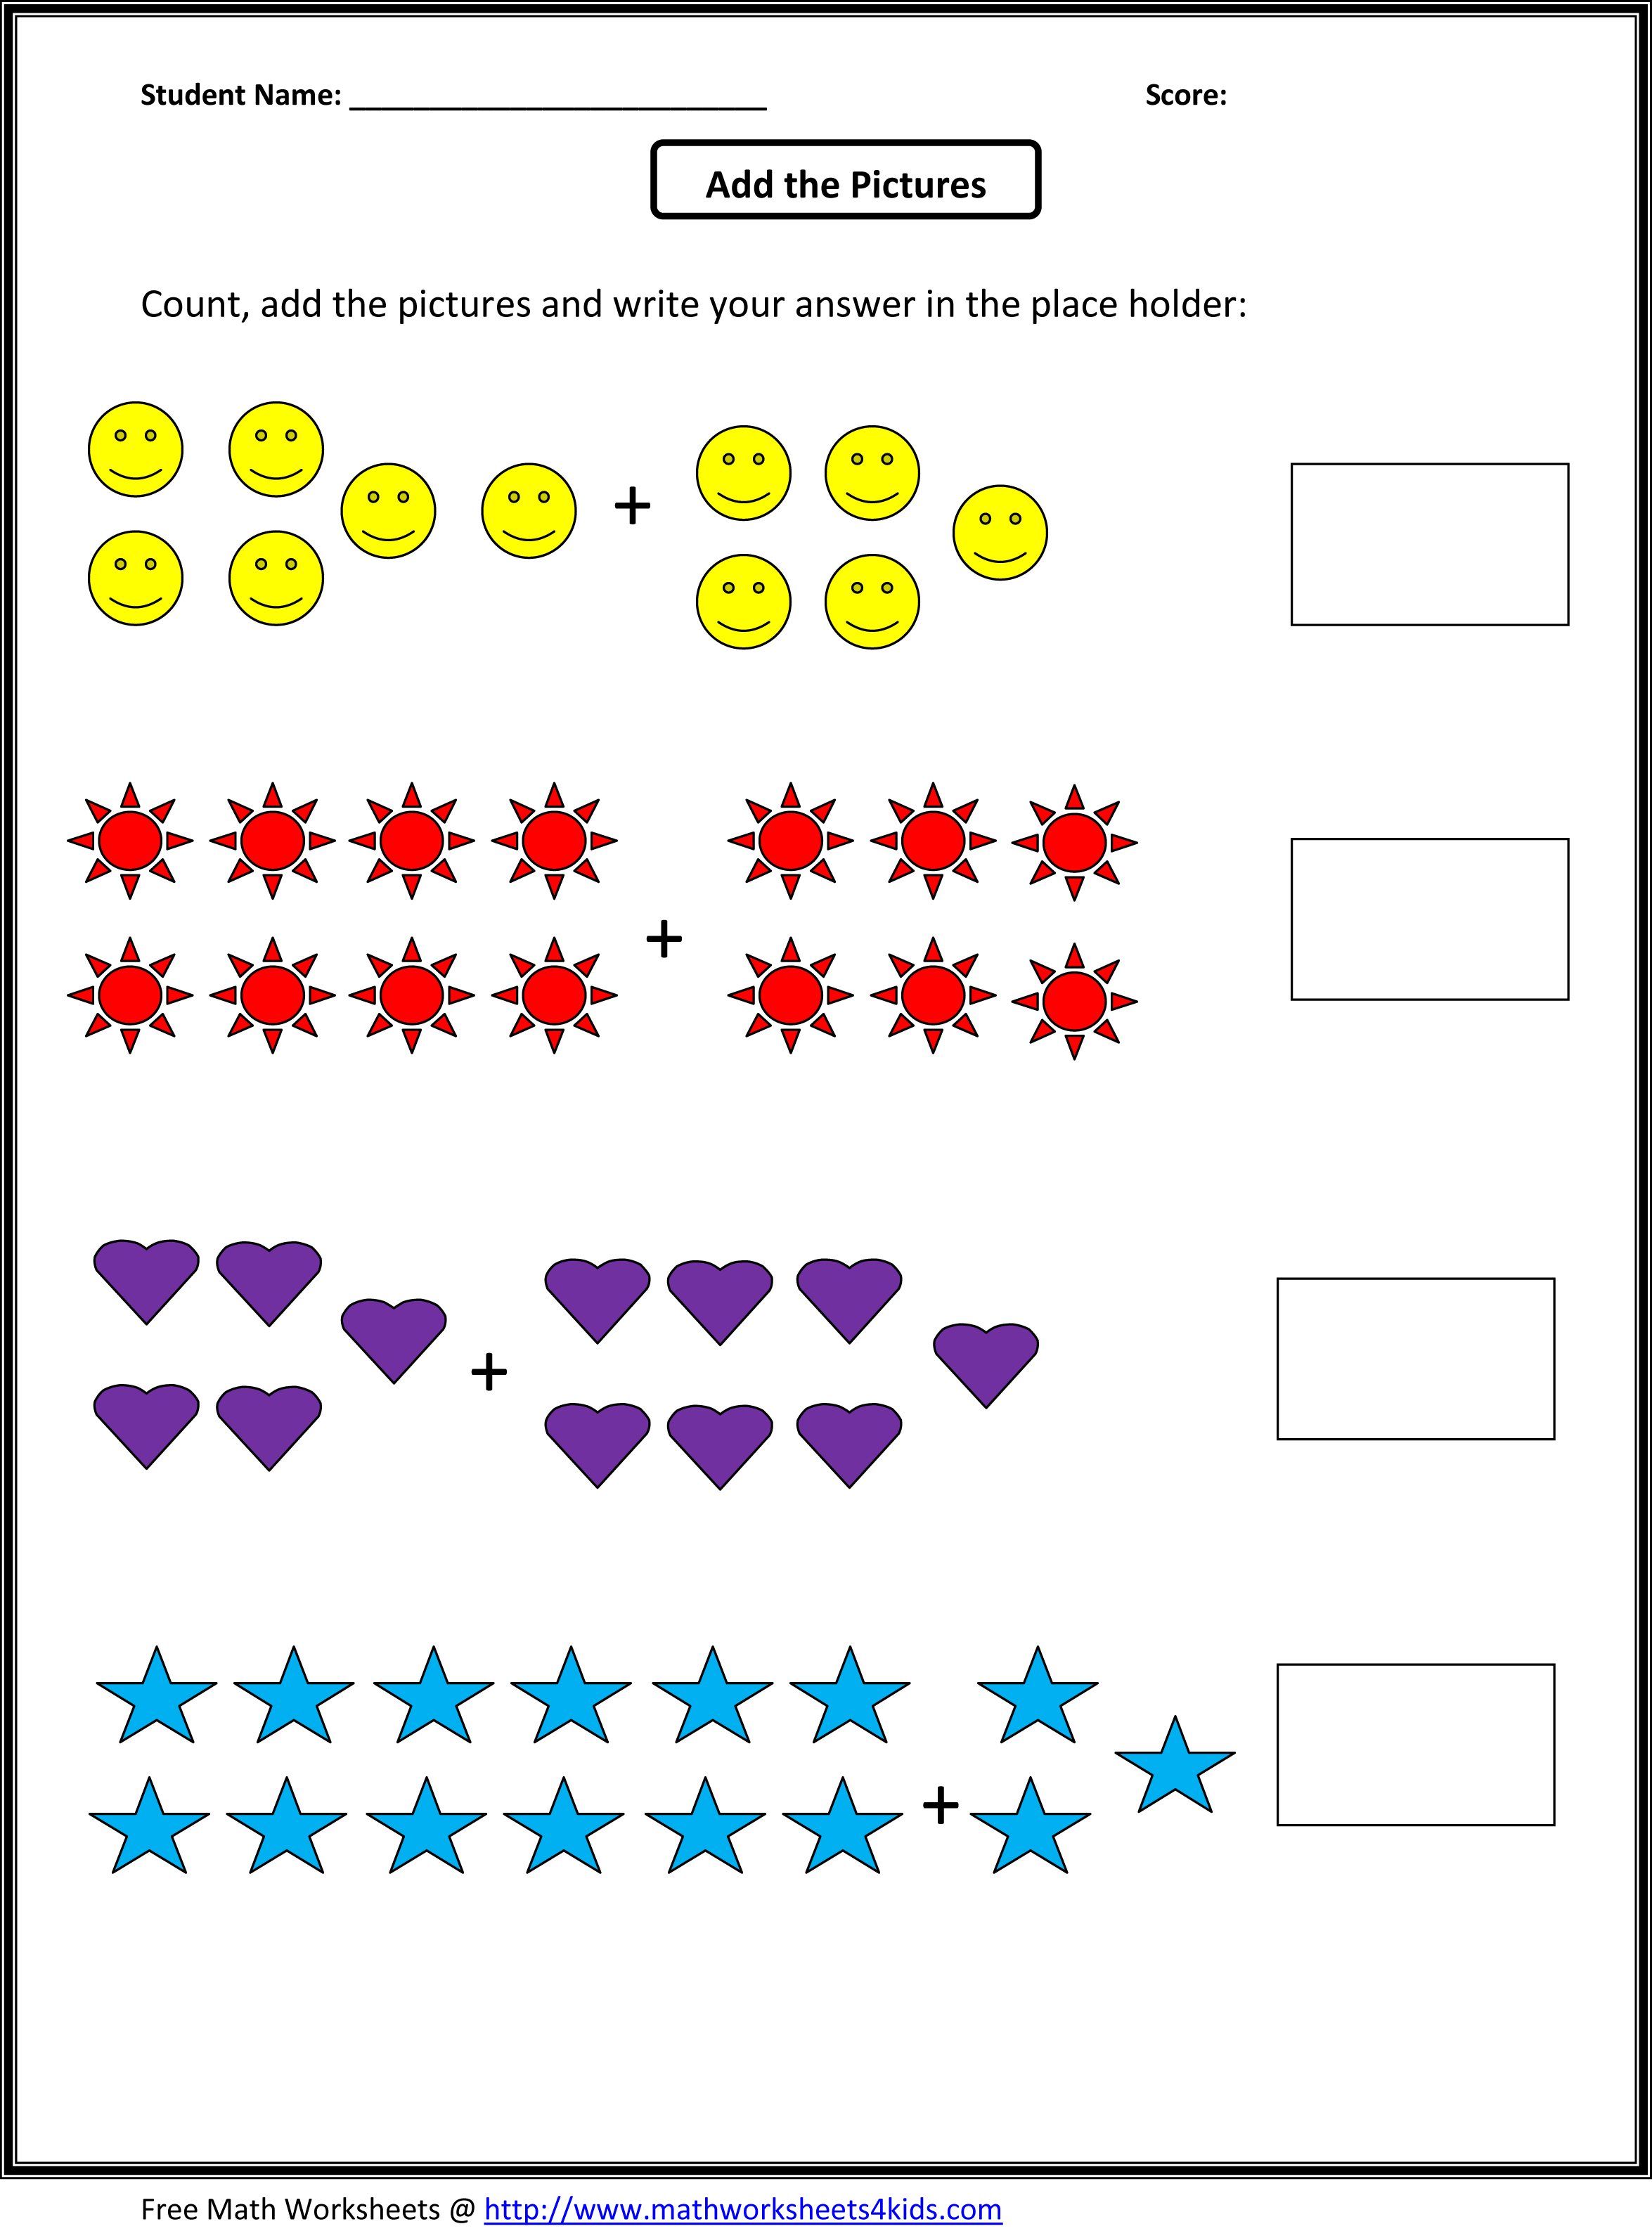 Proatmealus  Sweet Grade  Maths Worksheet  Reocurent With Great Math Worksheets For St Grade Free  Reocurent With Cute Nothing But The Truth Worksheets Also Order Of Operations Worksheets Free In Addition Types Of Triangle Worksheet And Timesheet Worksheet As Well As Excel  Unhide Worksheet Additionally Prepostion Worksheets From Reocurentcom With Proatmealus  Great Grade  Maths Worksheet  Reocurent With Cute Math Worksheets For St Grade Free  Reocurent And Sweet Nothing But The Truth Worksheets Also Order Of Operations Worksheets Free In Addition Types Of Triangle Worksheet From Reocurentcom